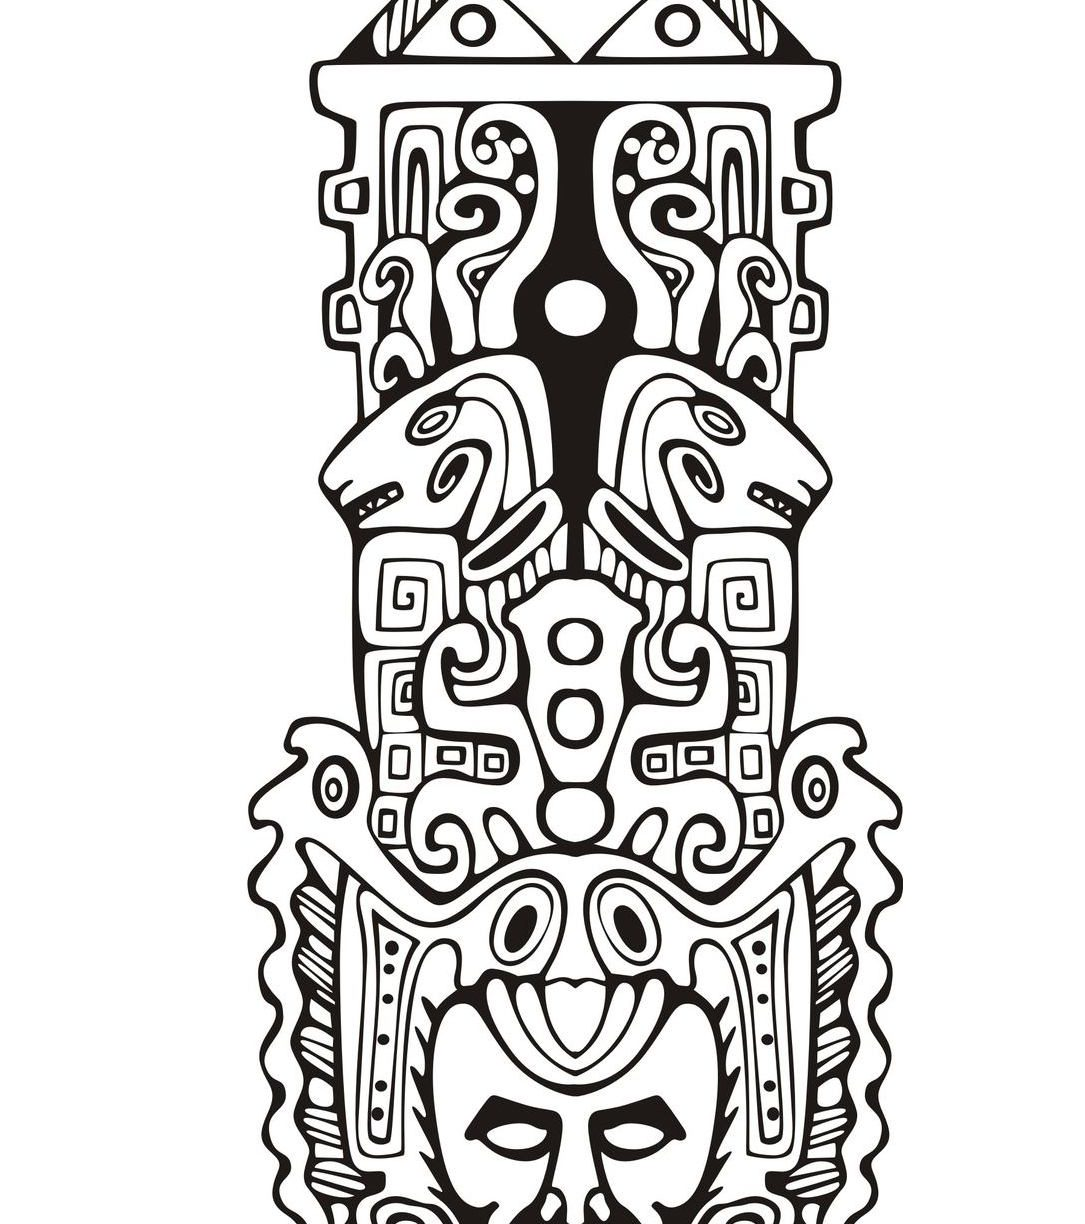 Totem Pole Coloring Pages At Getcolorings